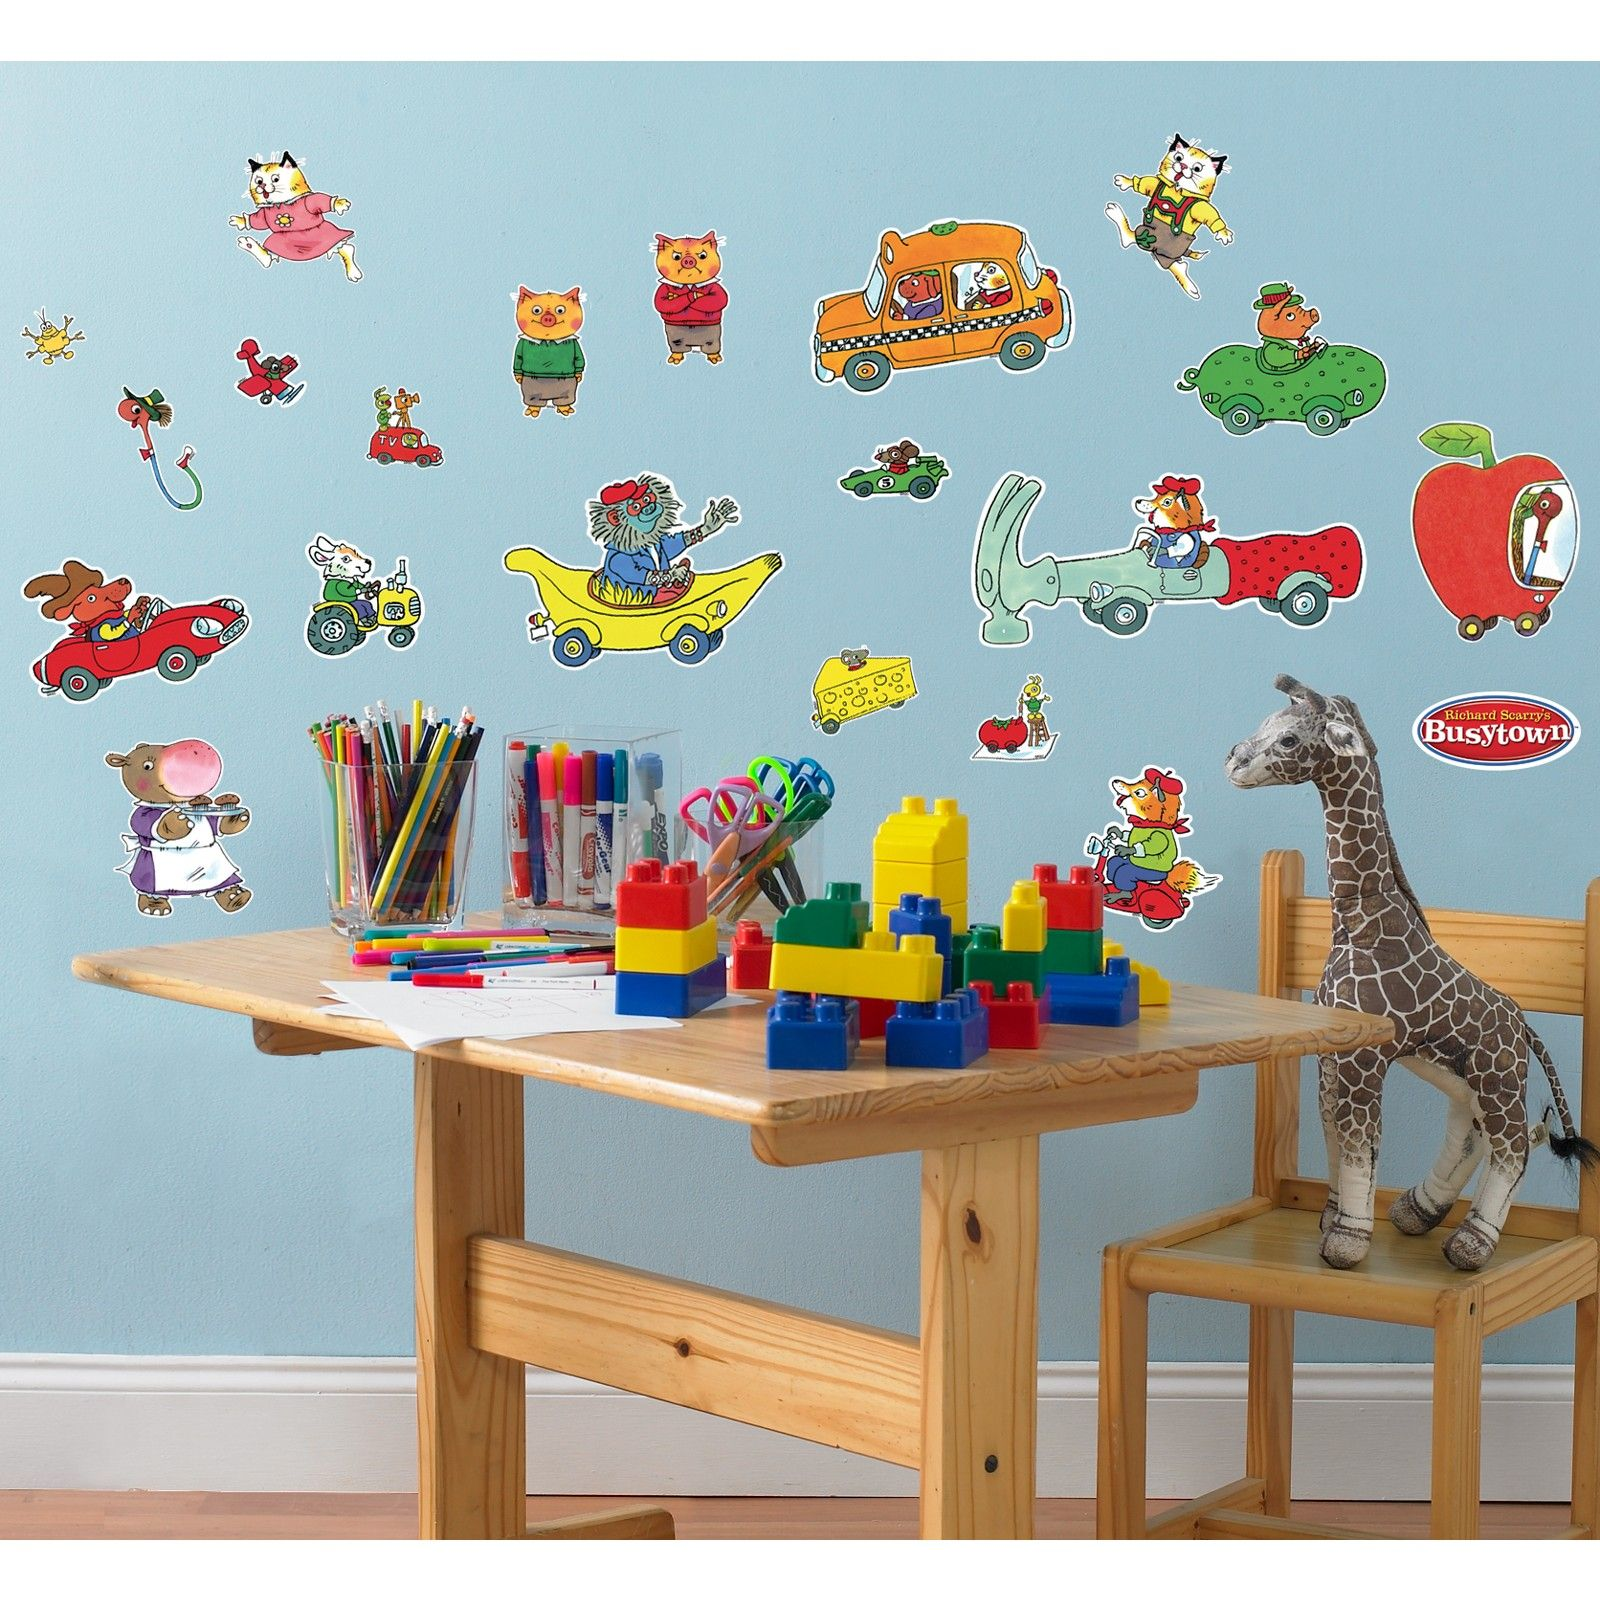 Richard Scarrys Busytown Removable Wall Decorations 80754 Busy